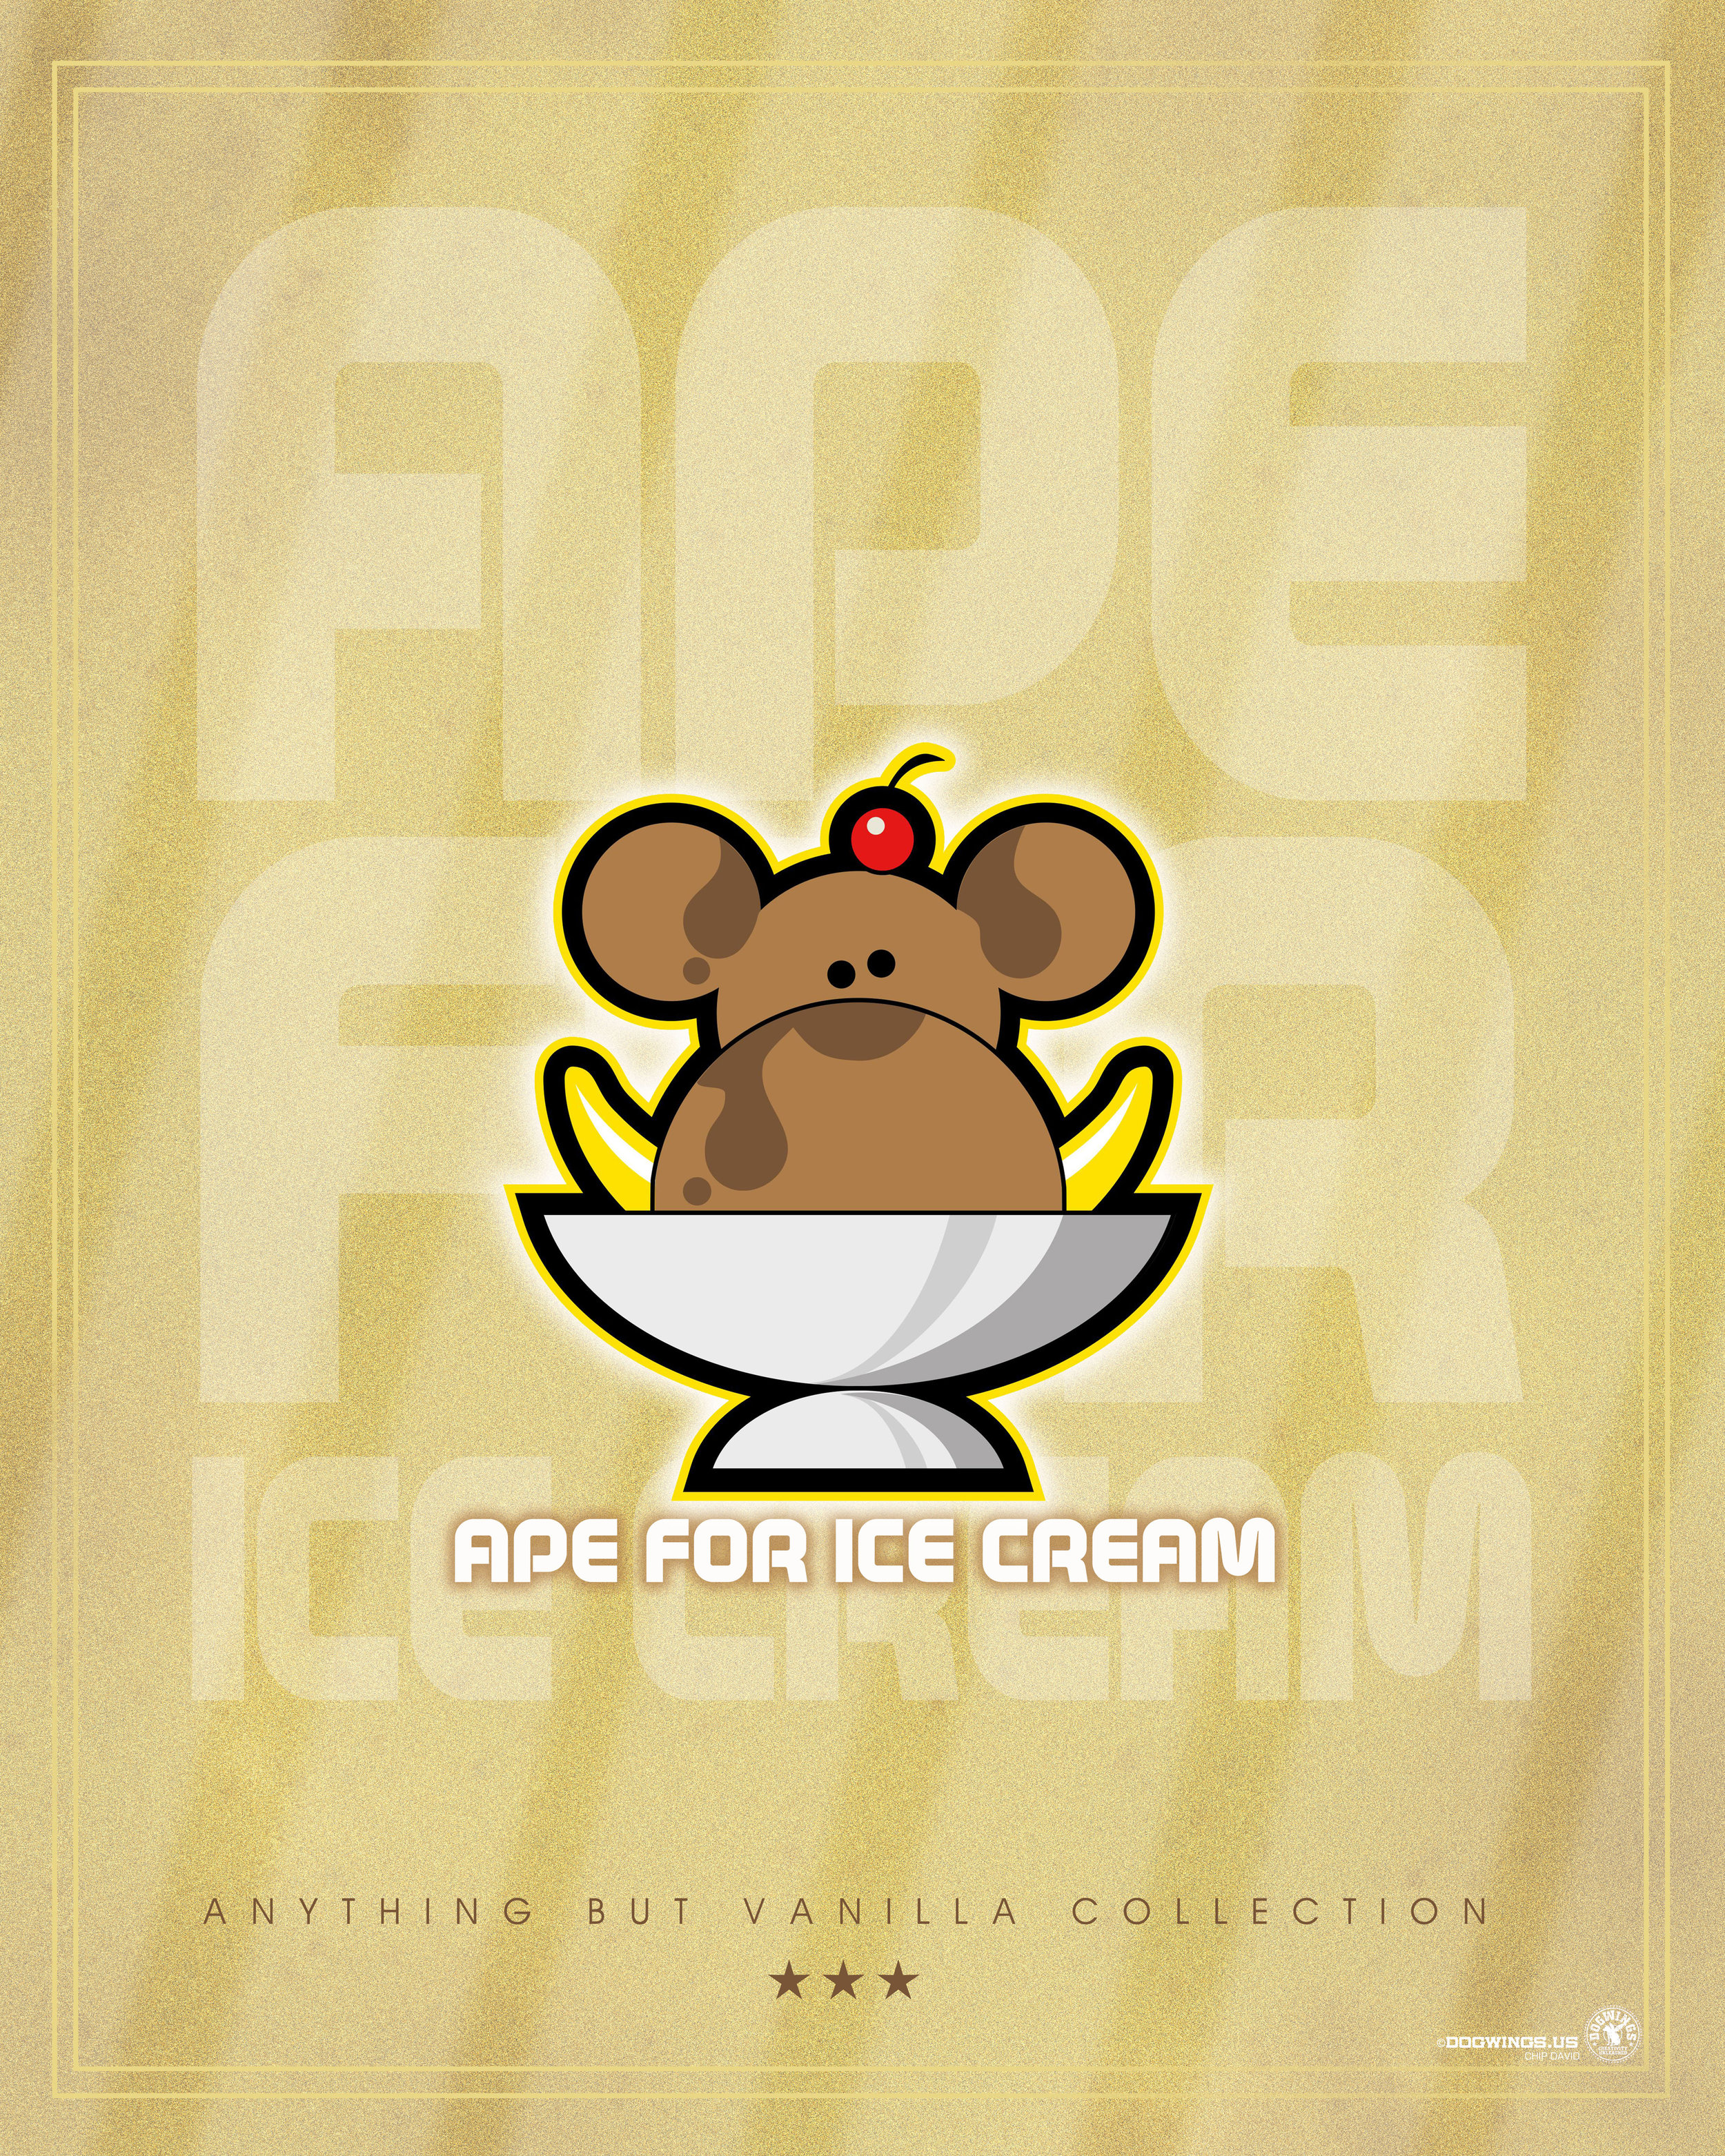 ABV COLLECTION: APE FOR ICE CREAM